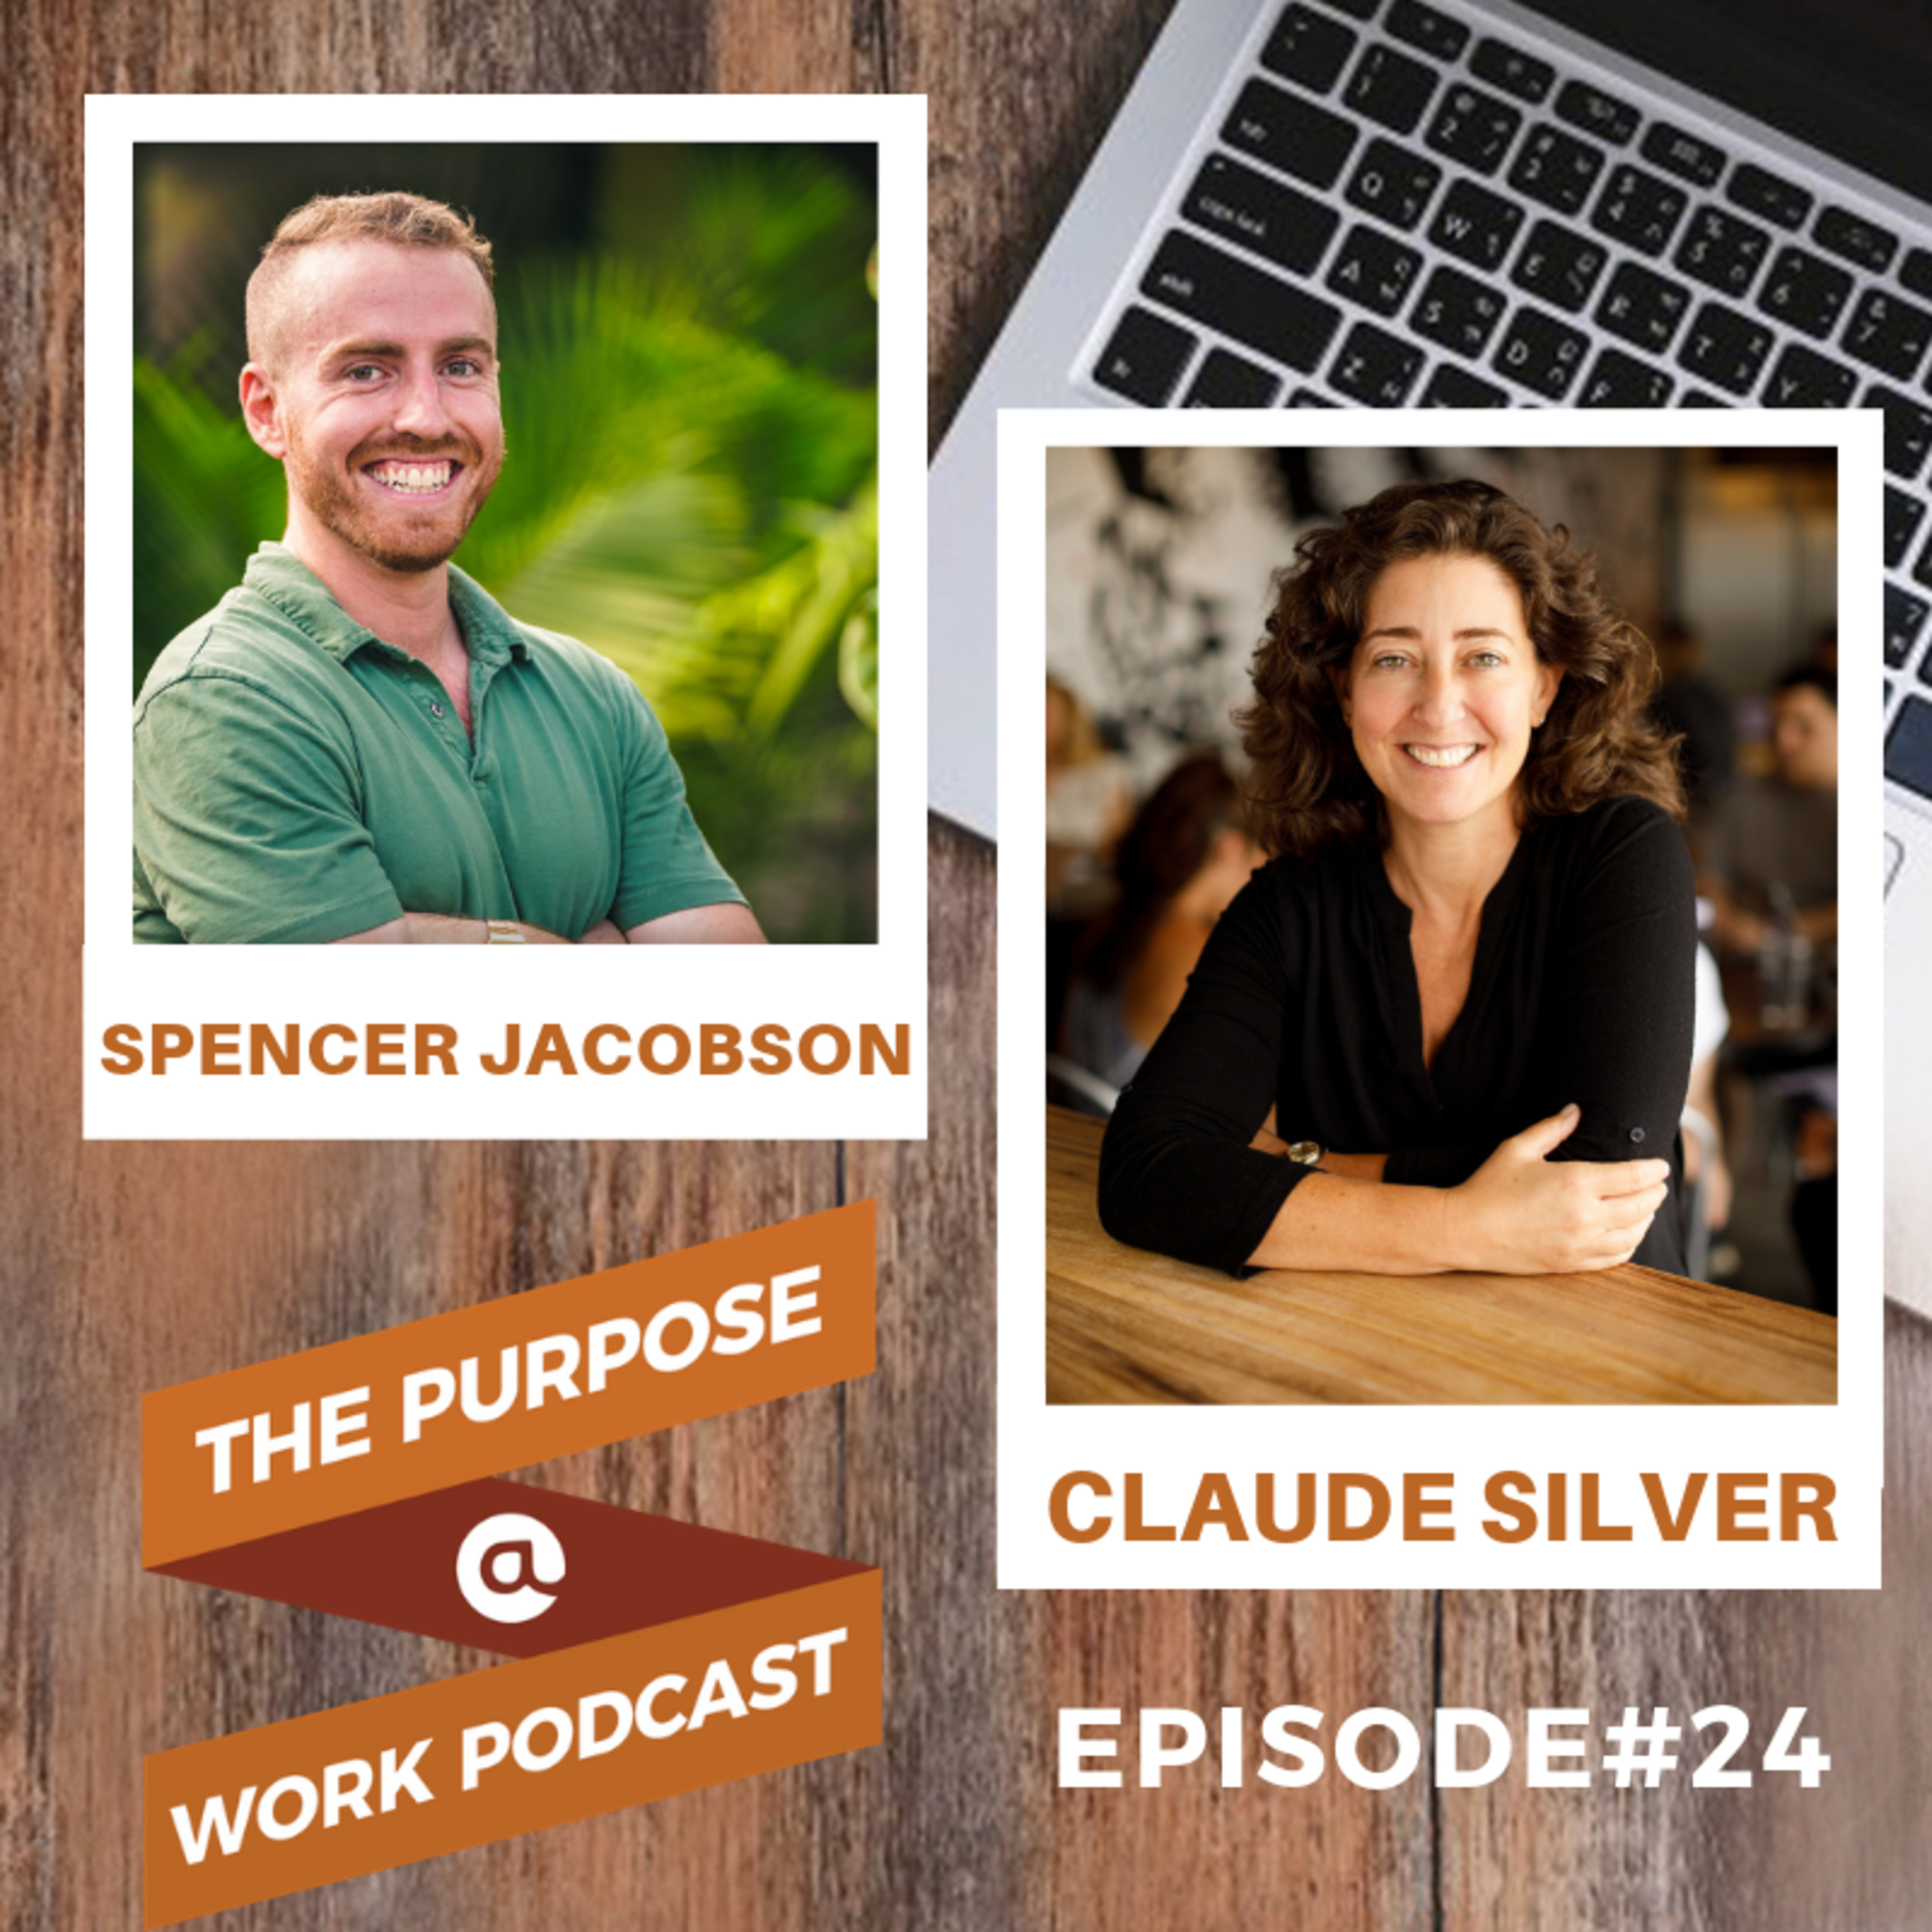 #24 Claude Silver - Chief Heart Officer @VaynerMedia: The Courage to Follow Your Own Path and Bringing Humanity Back to the Workplace